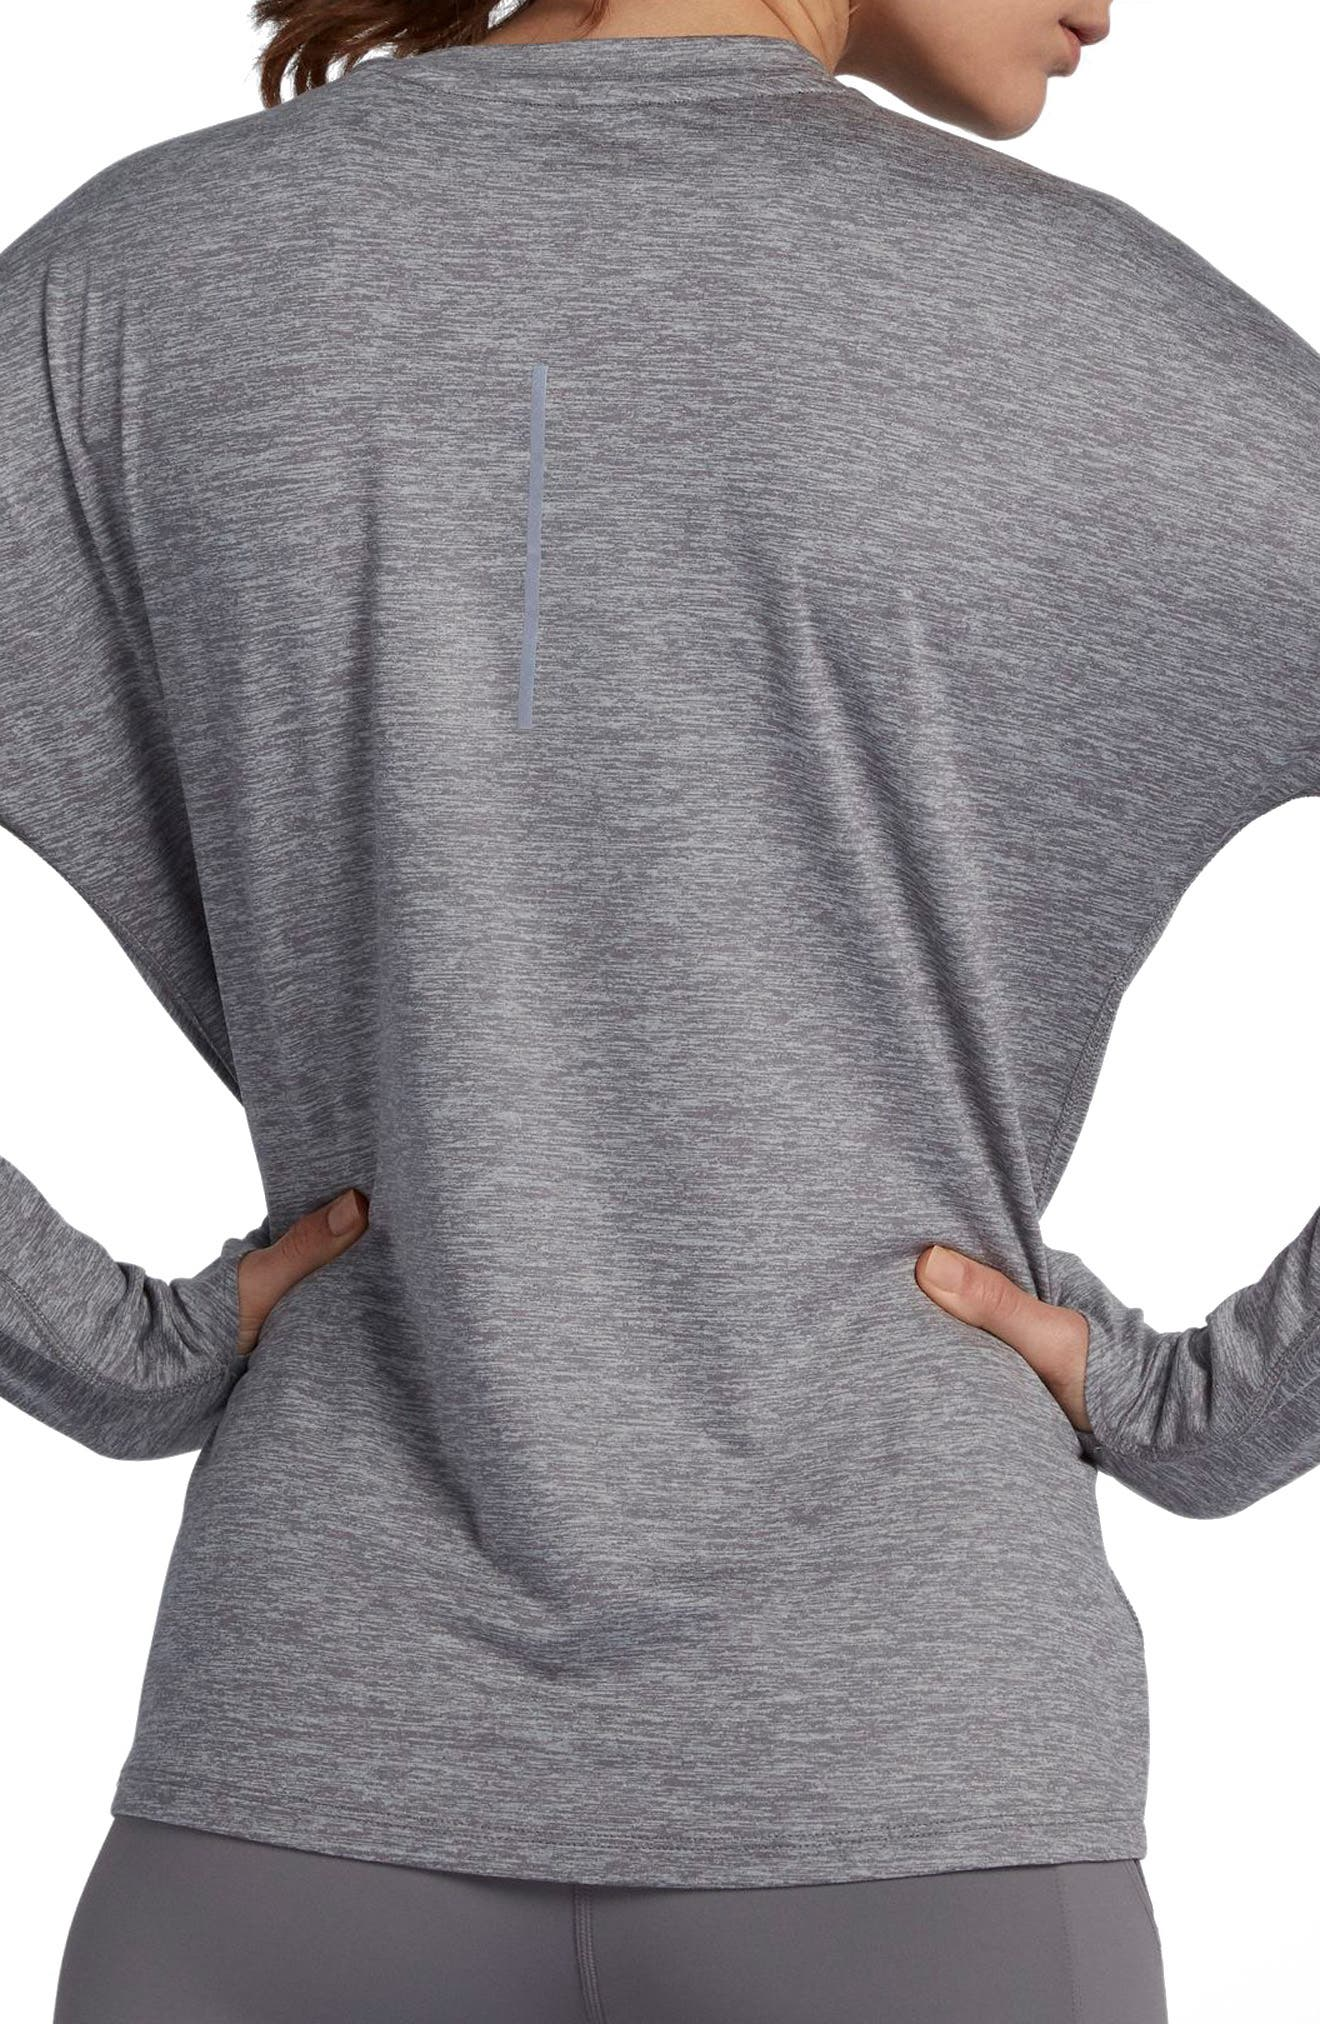 NIKE,                             Dry Element Long Sleeve Top,                             Alternate thumbnail 2, color,                             036